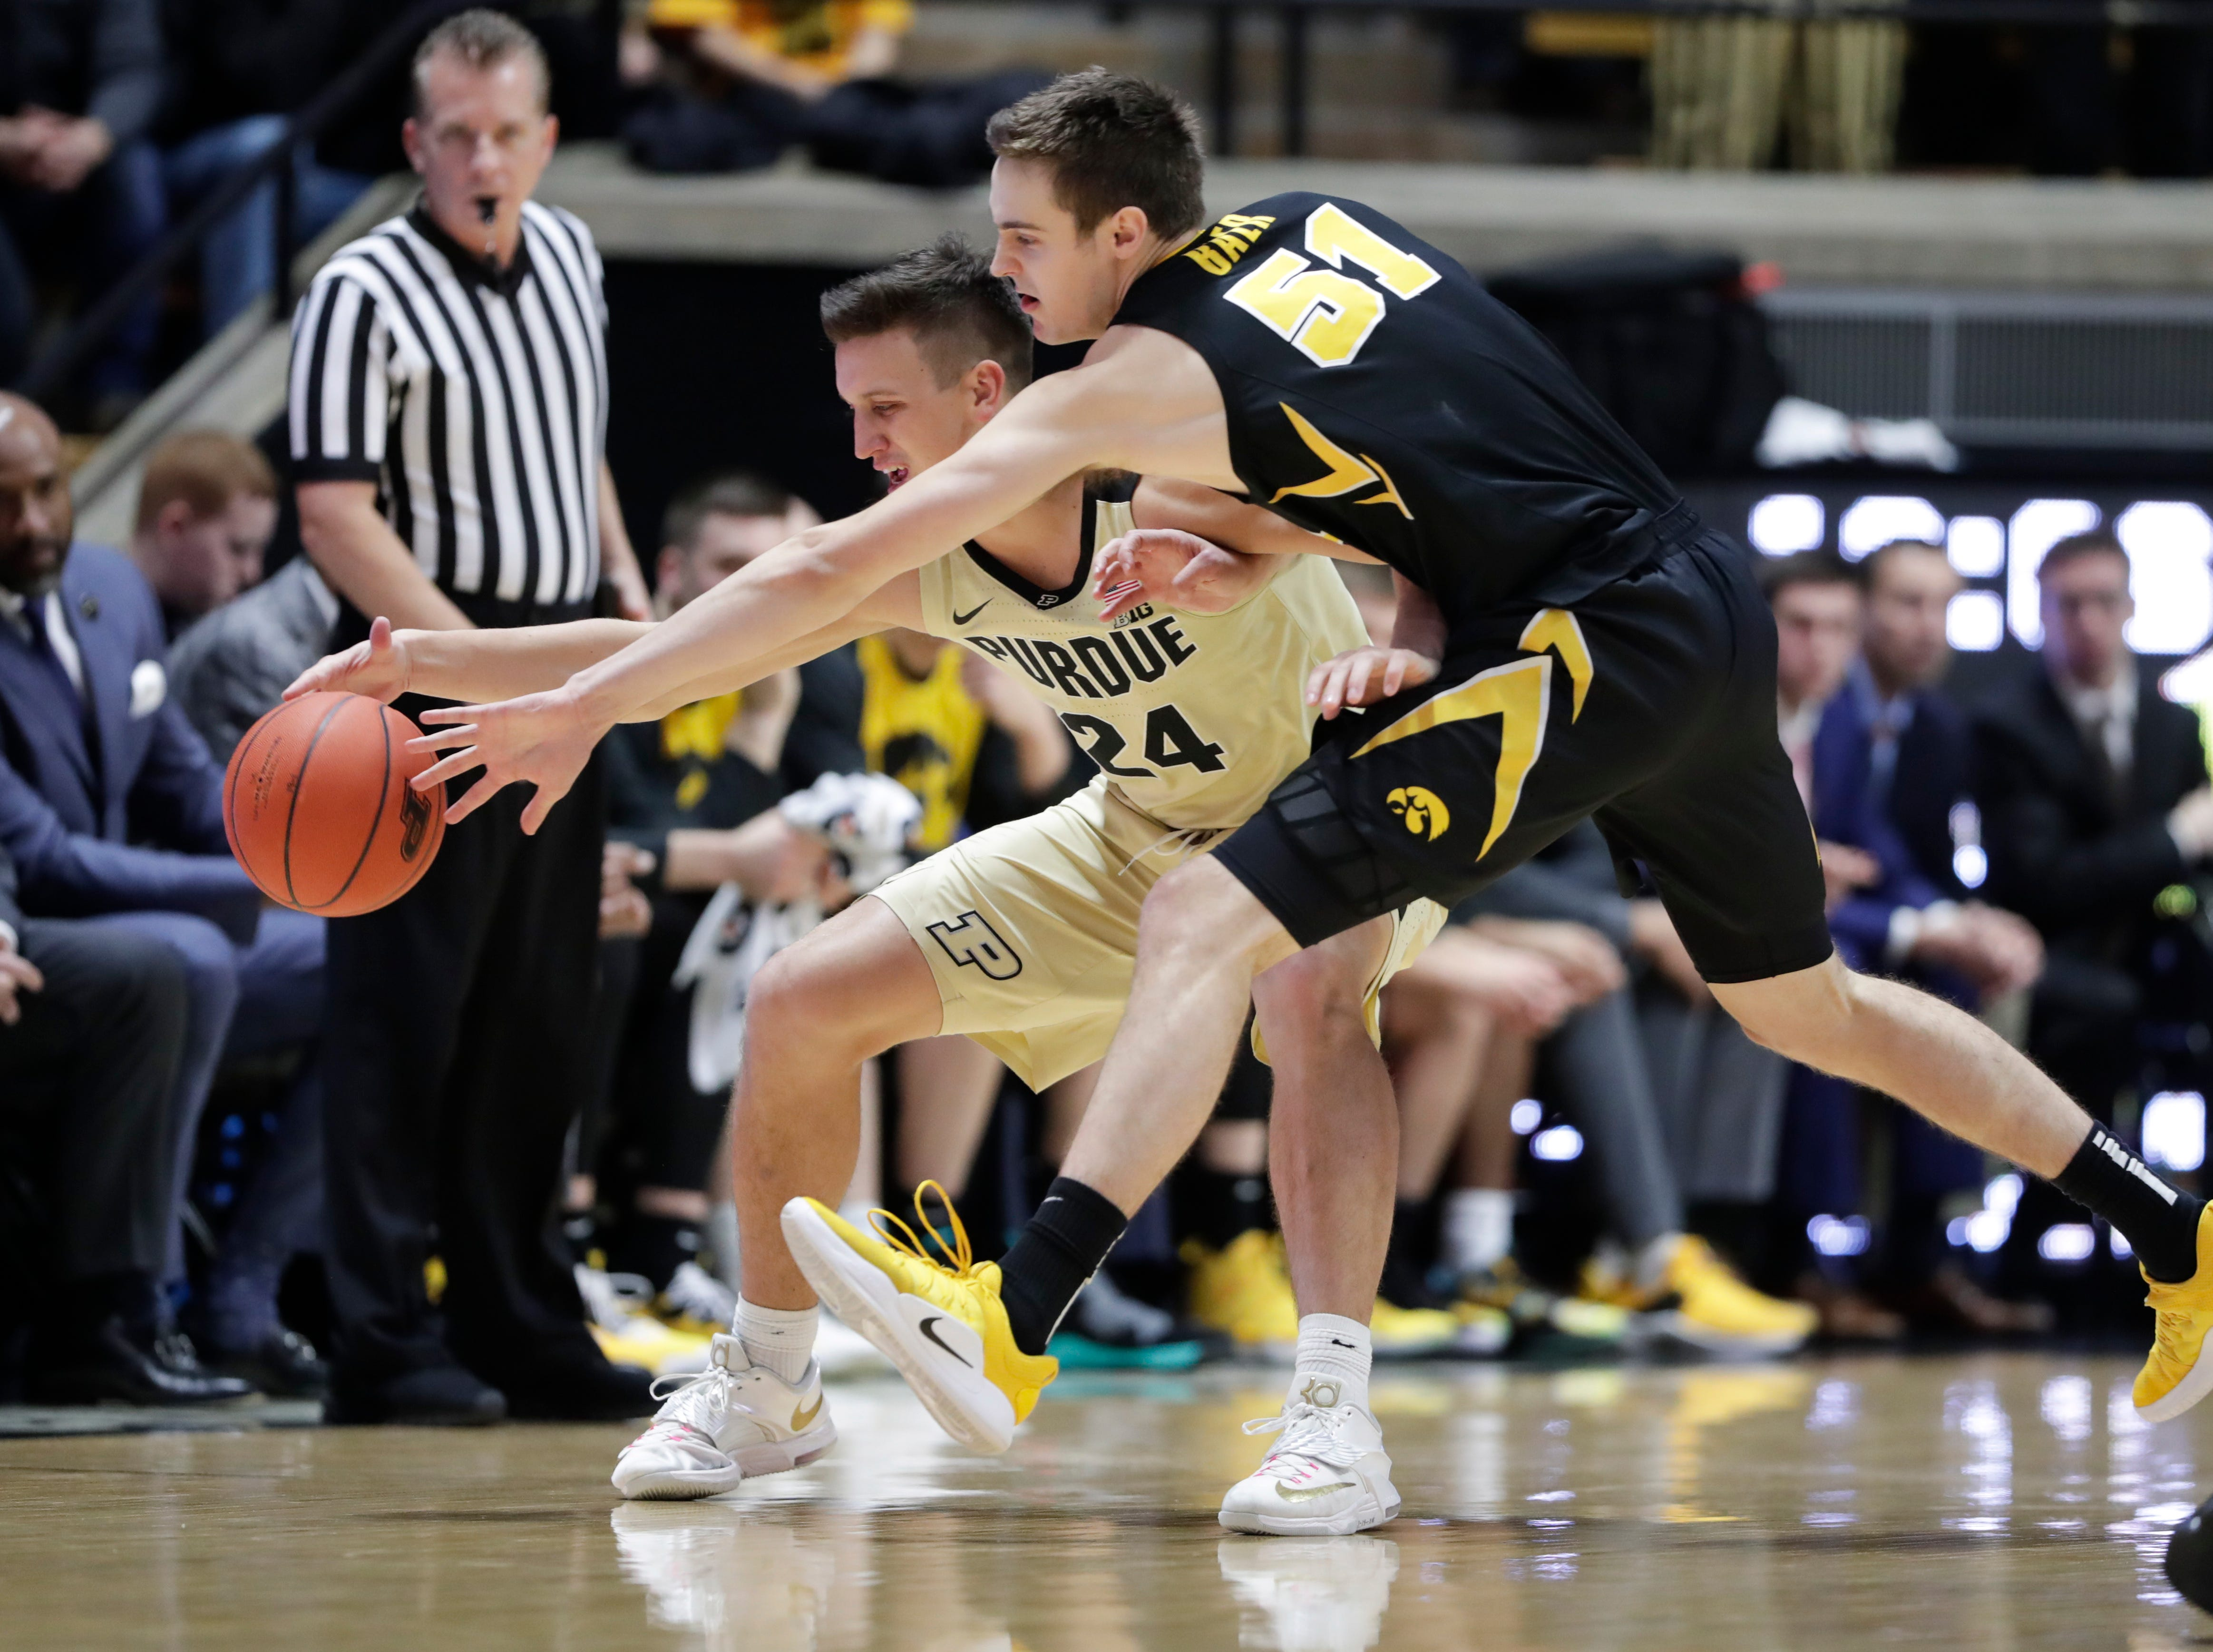 Iowa forward Nicholas Baer (51) attempts to knock the ball away from Purdue forward Grady Eifert (24) during the first half of an NCAA college basketball game in West Lafayette, Ind., Thursday, Jan. 3, 2019.